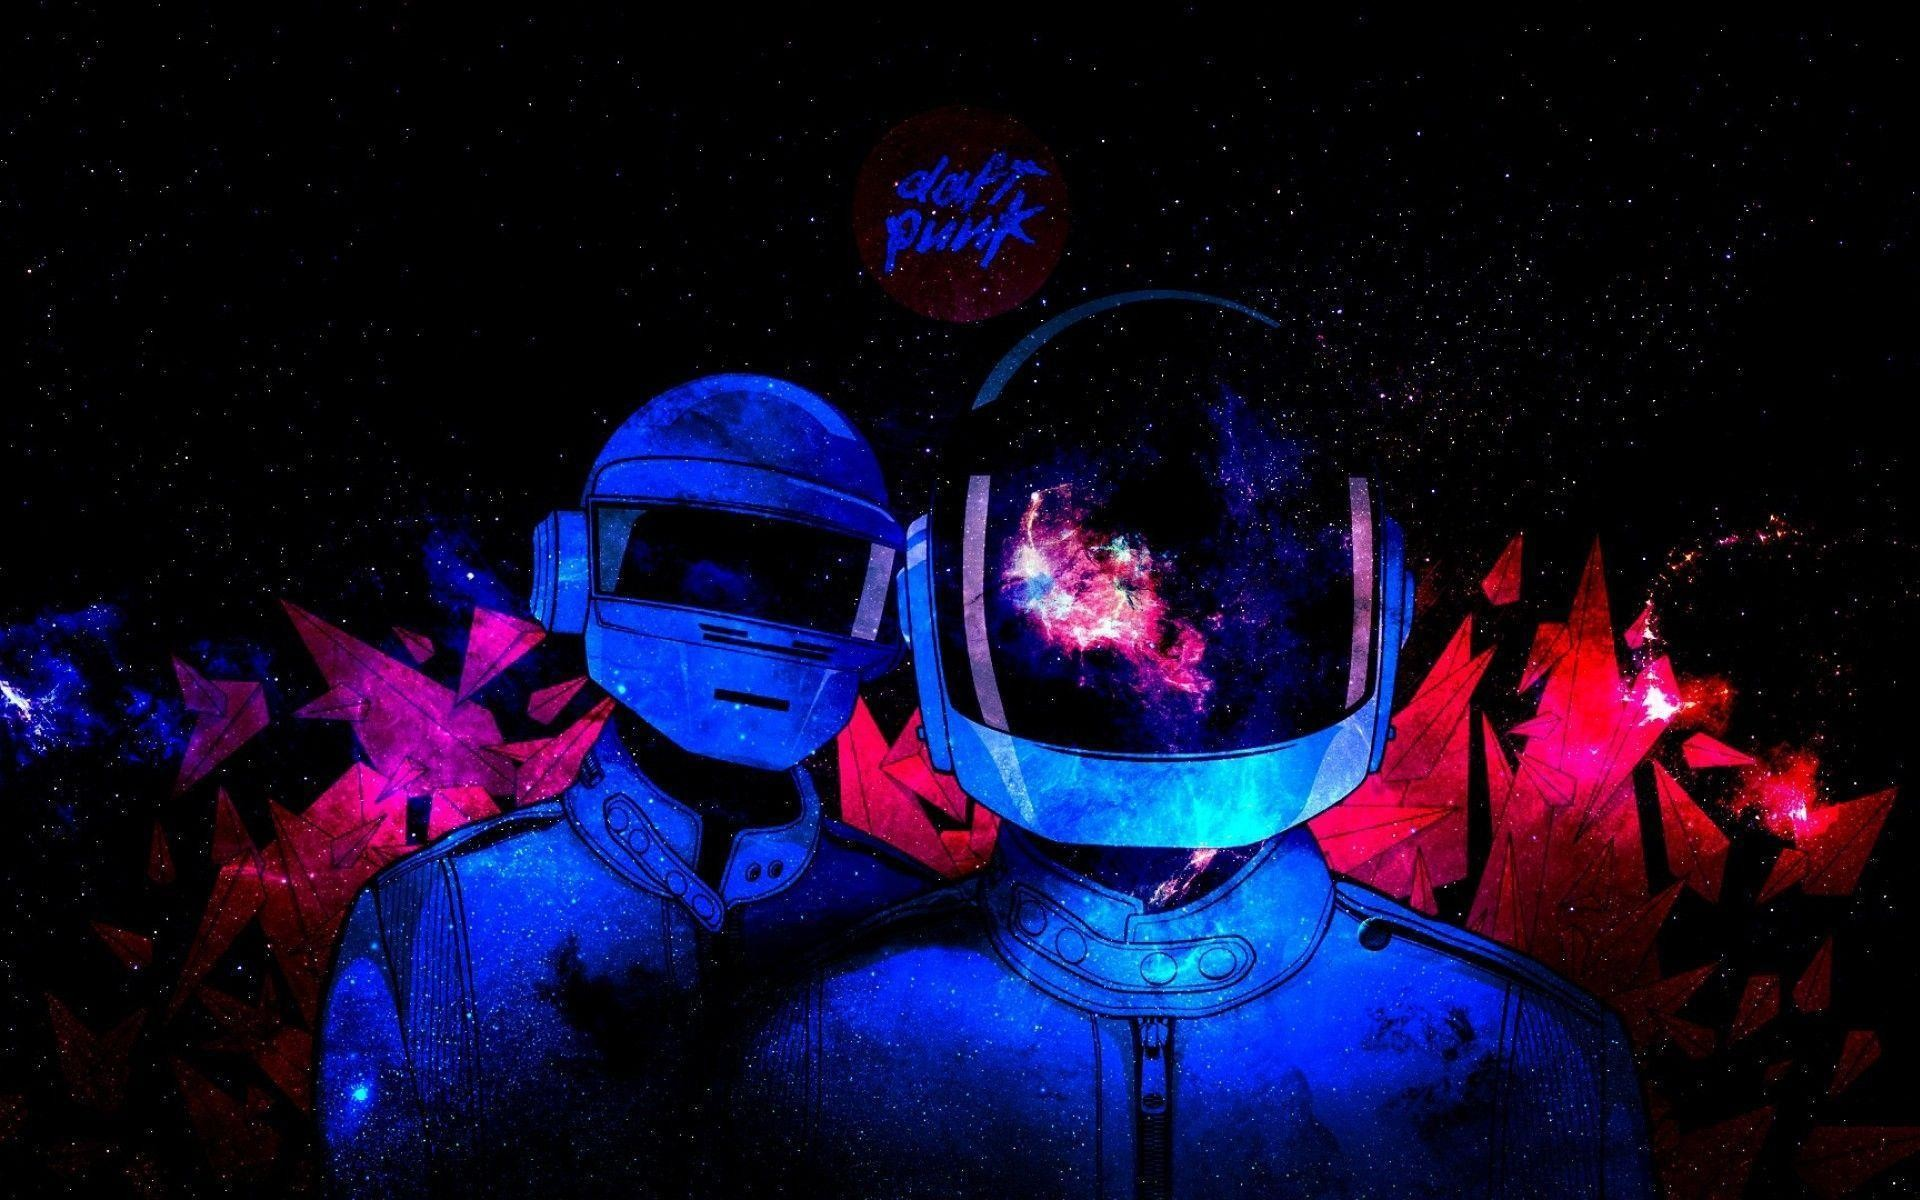 Outer Space Daft Punk Electronic Wallpaper Wide or HD | Artistic .